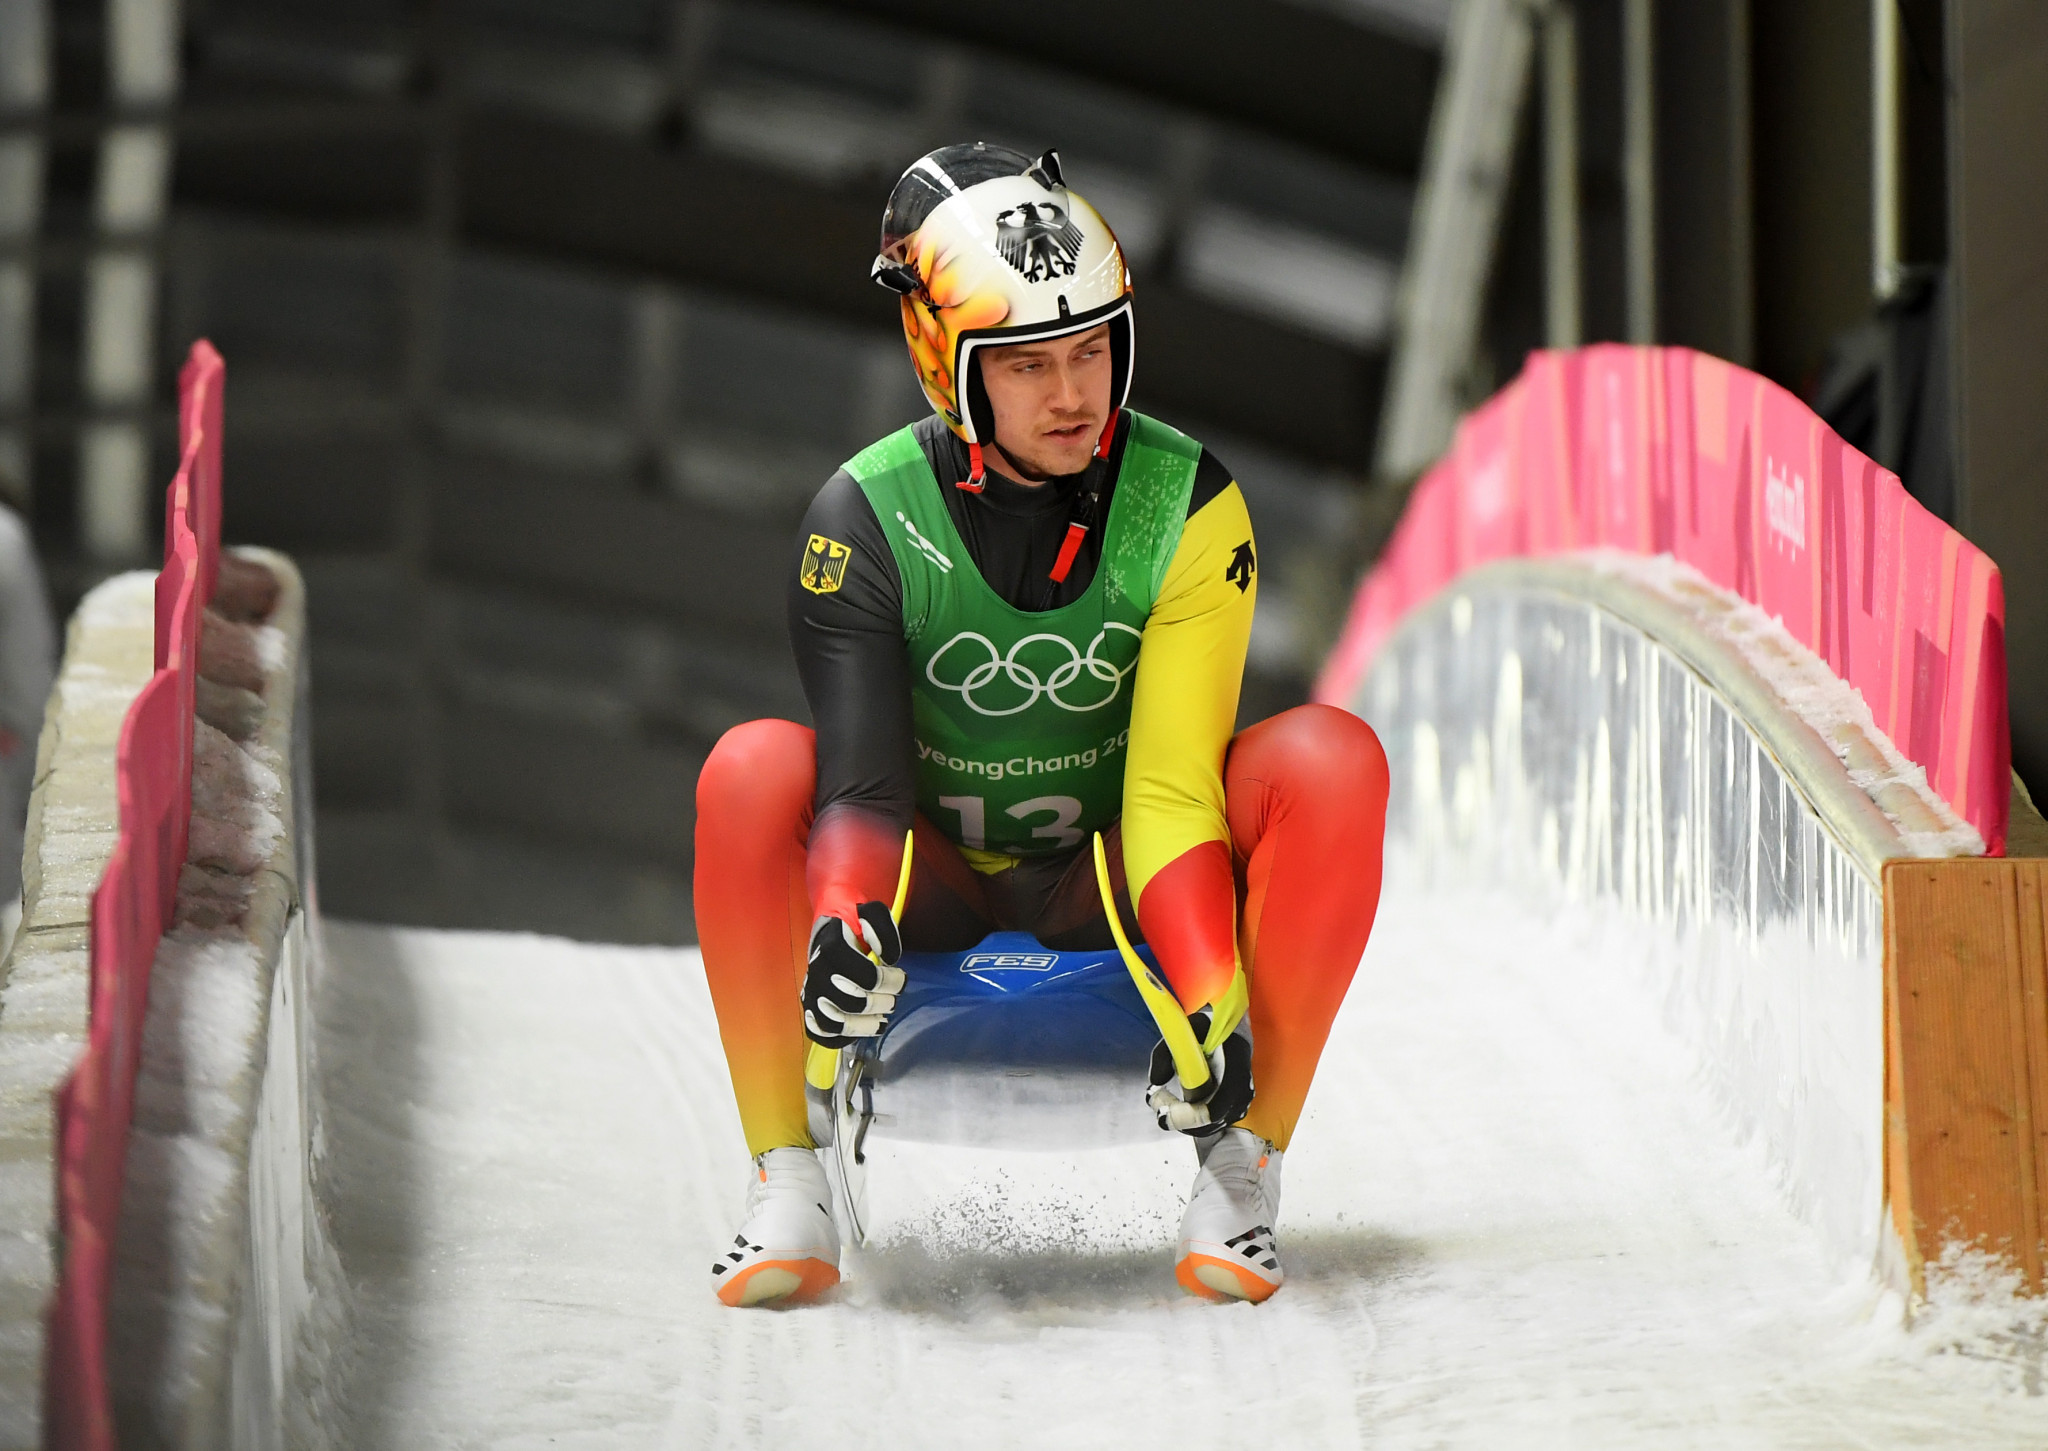 Ludwig and Loch to resume rivalry at Luge World Cup doubling as European Championships